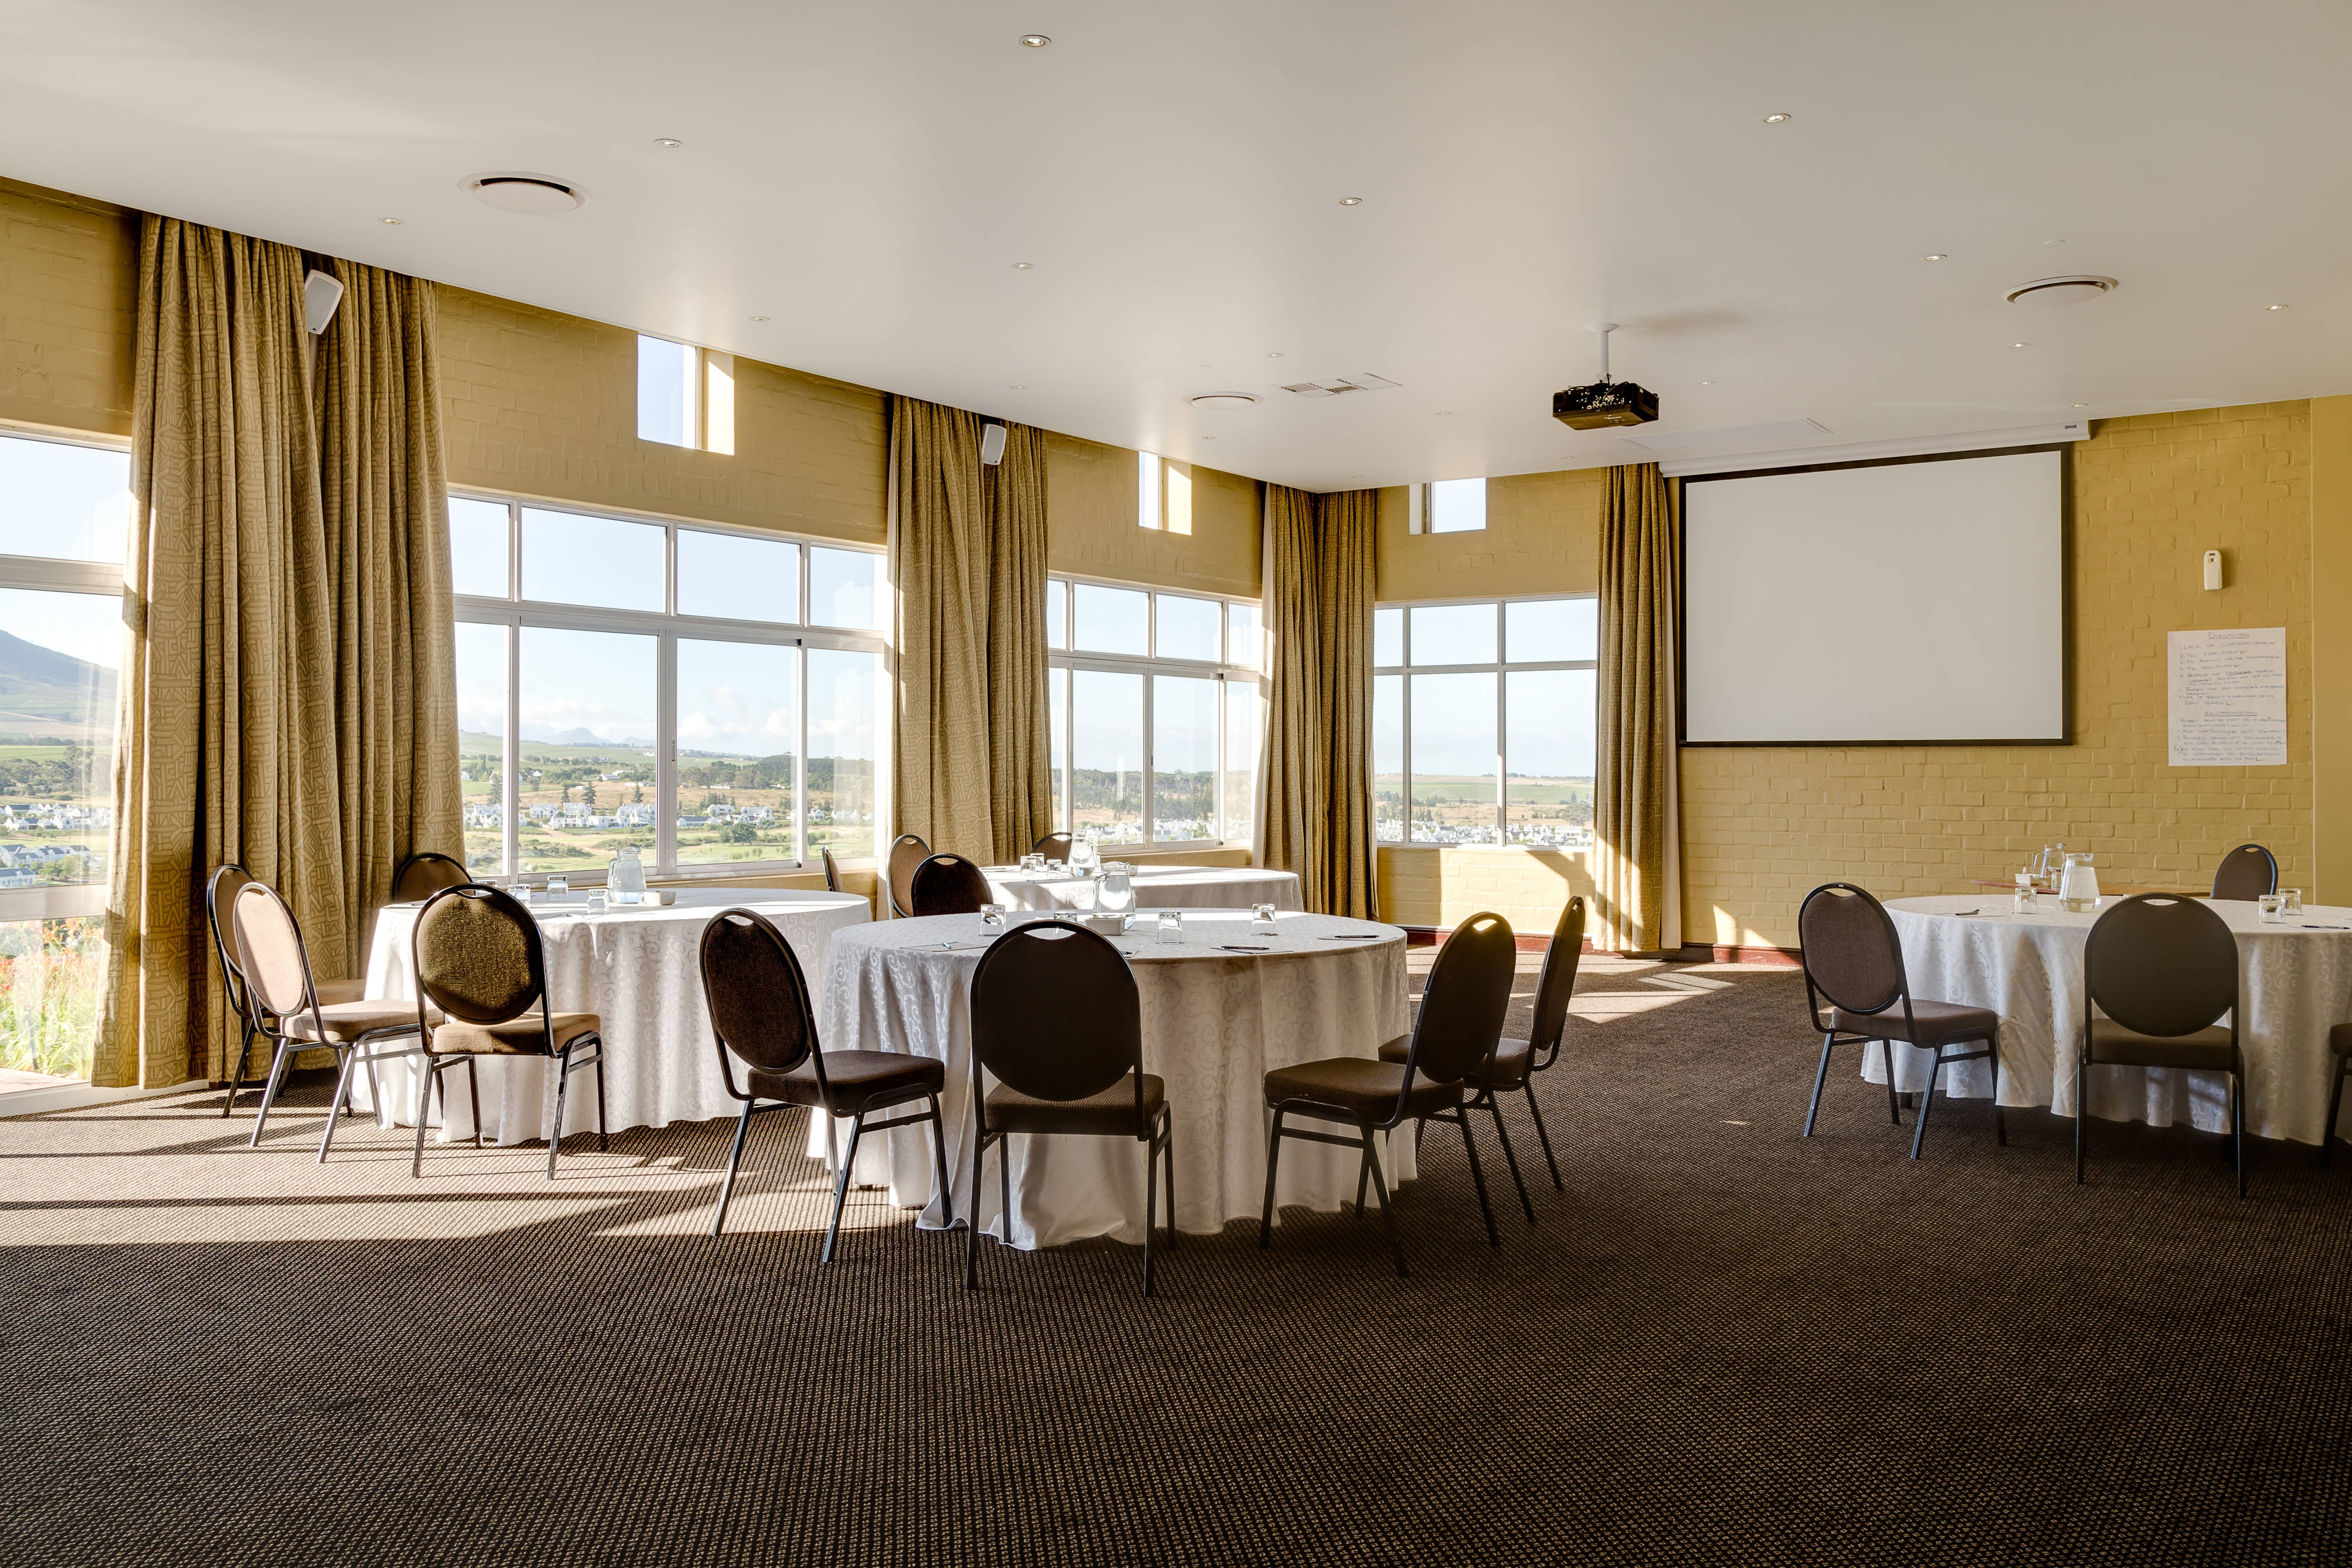 Conference Room – Banquet Setup